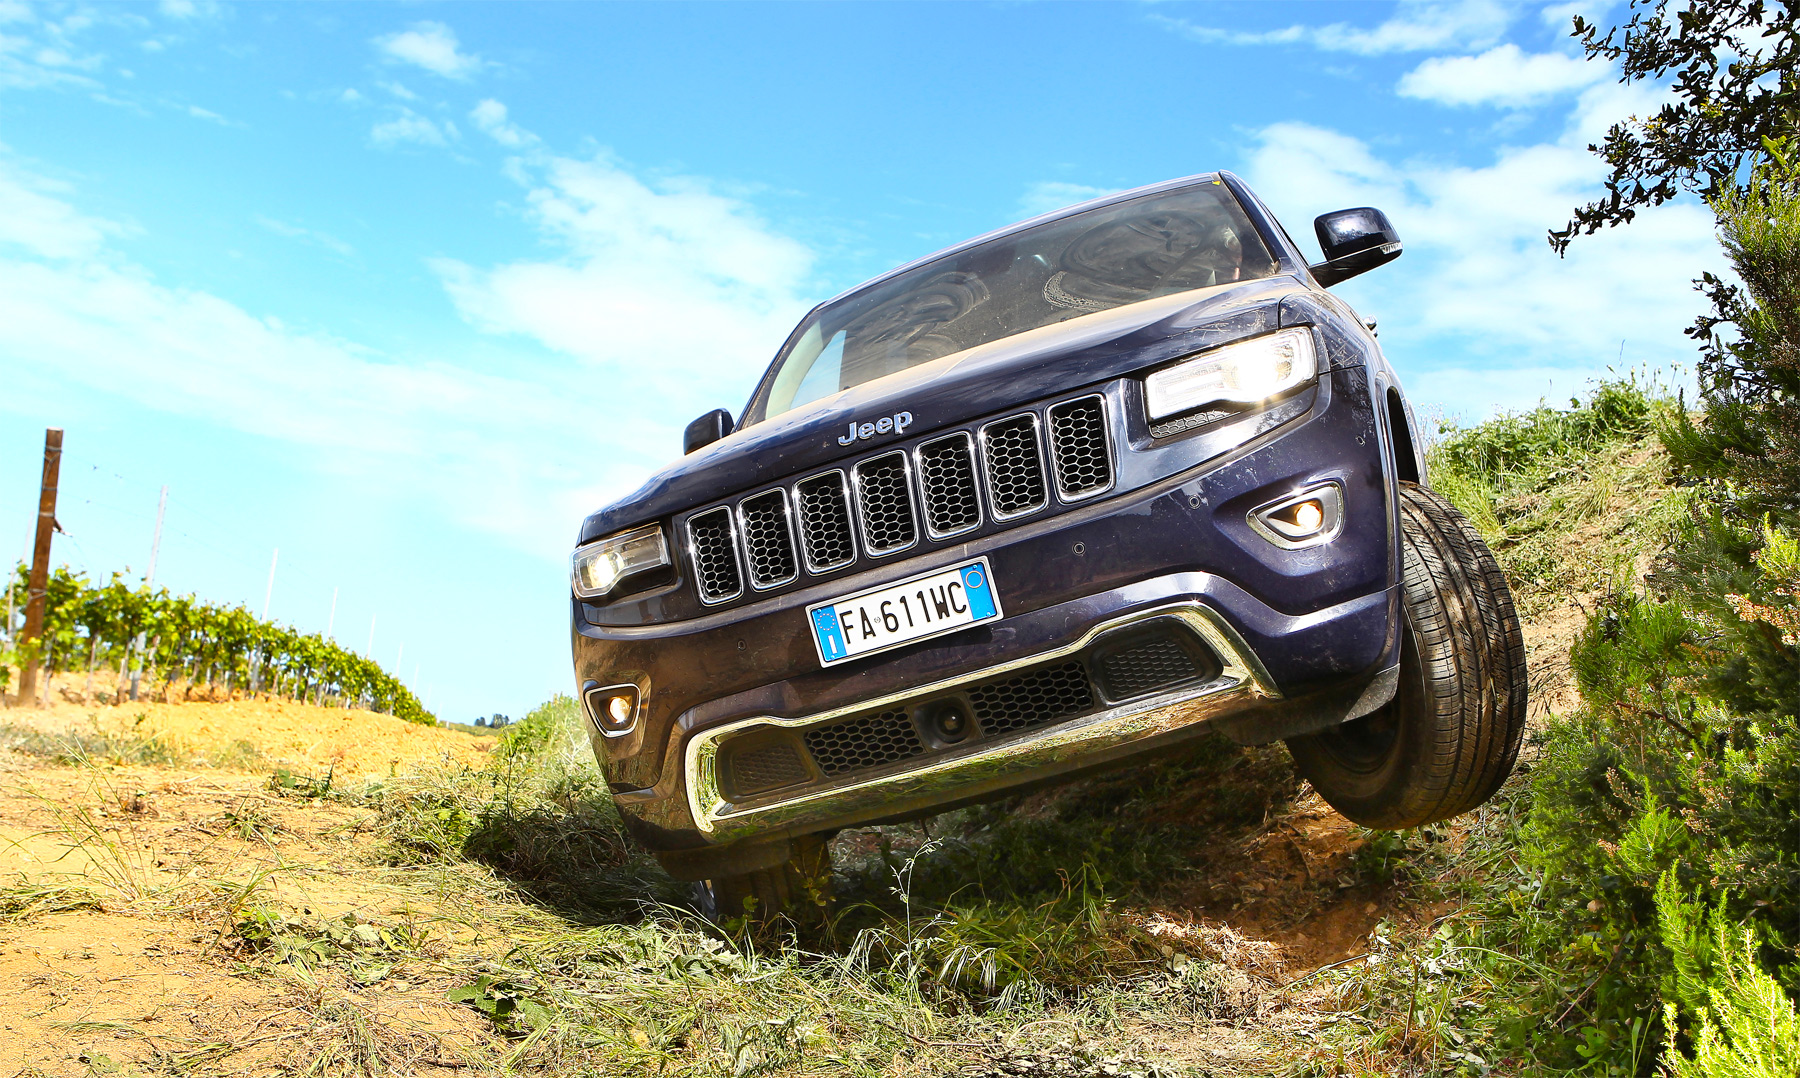 Jeep Grand Cherokee 3.0 V6 CRD Overland Road Test In St.Tropez